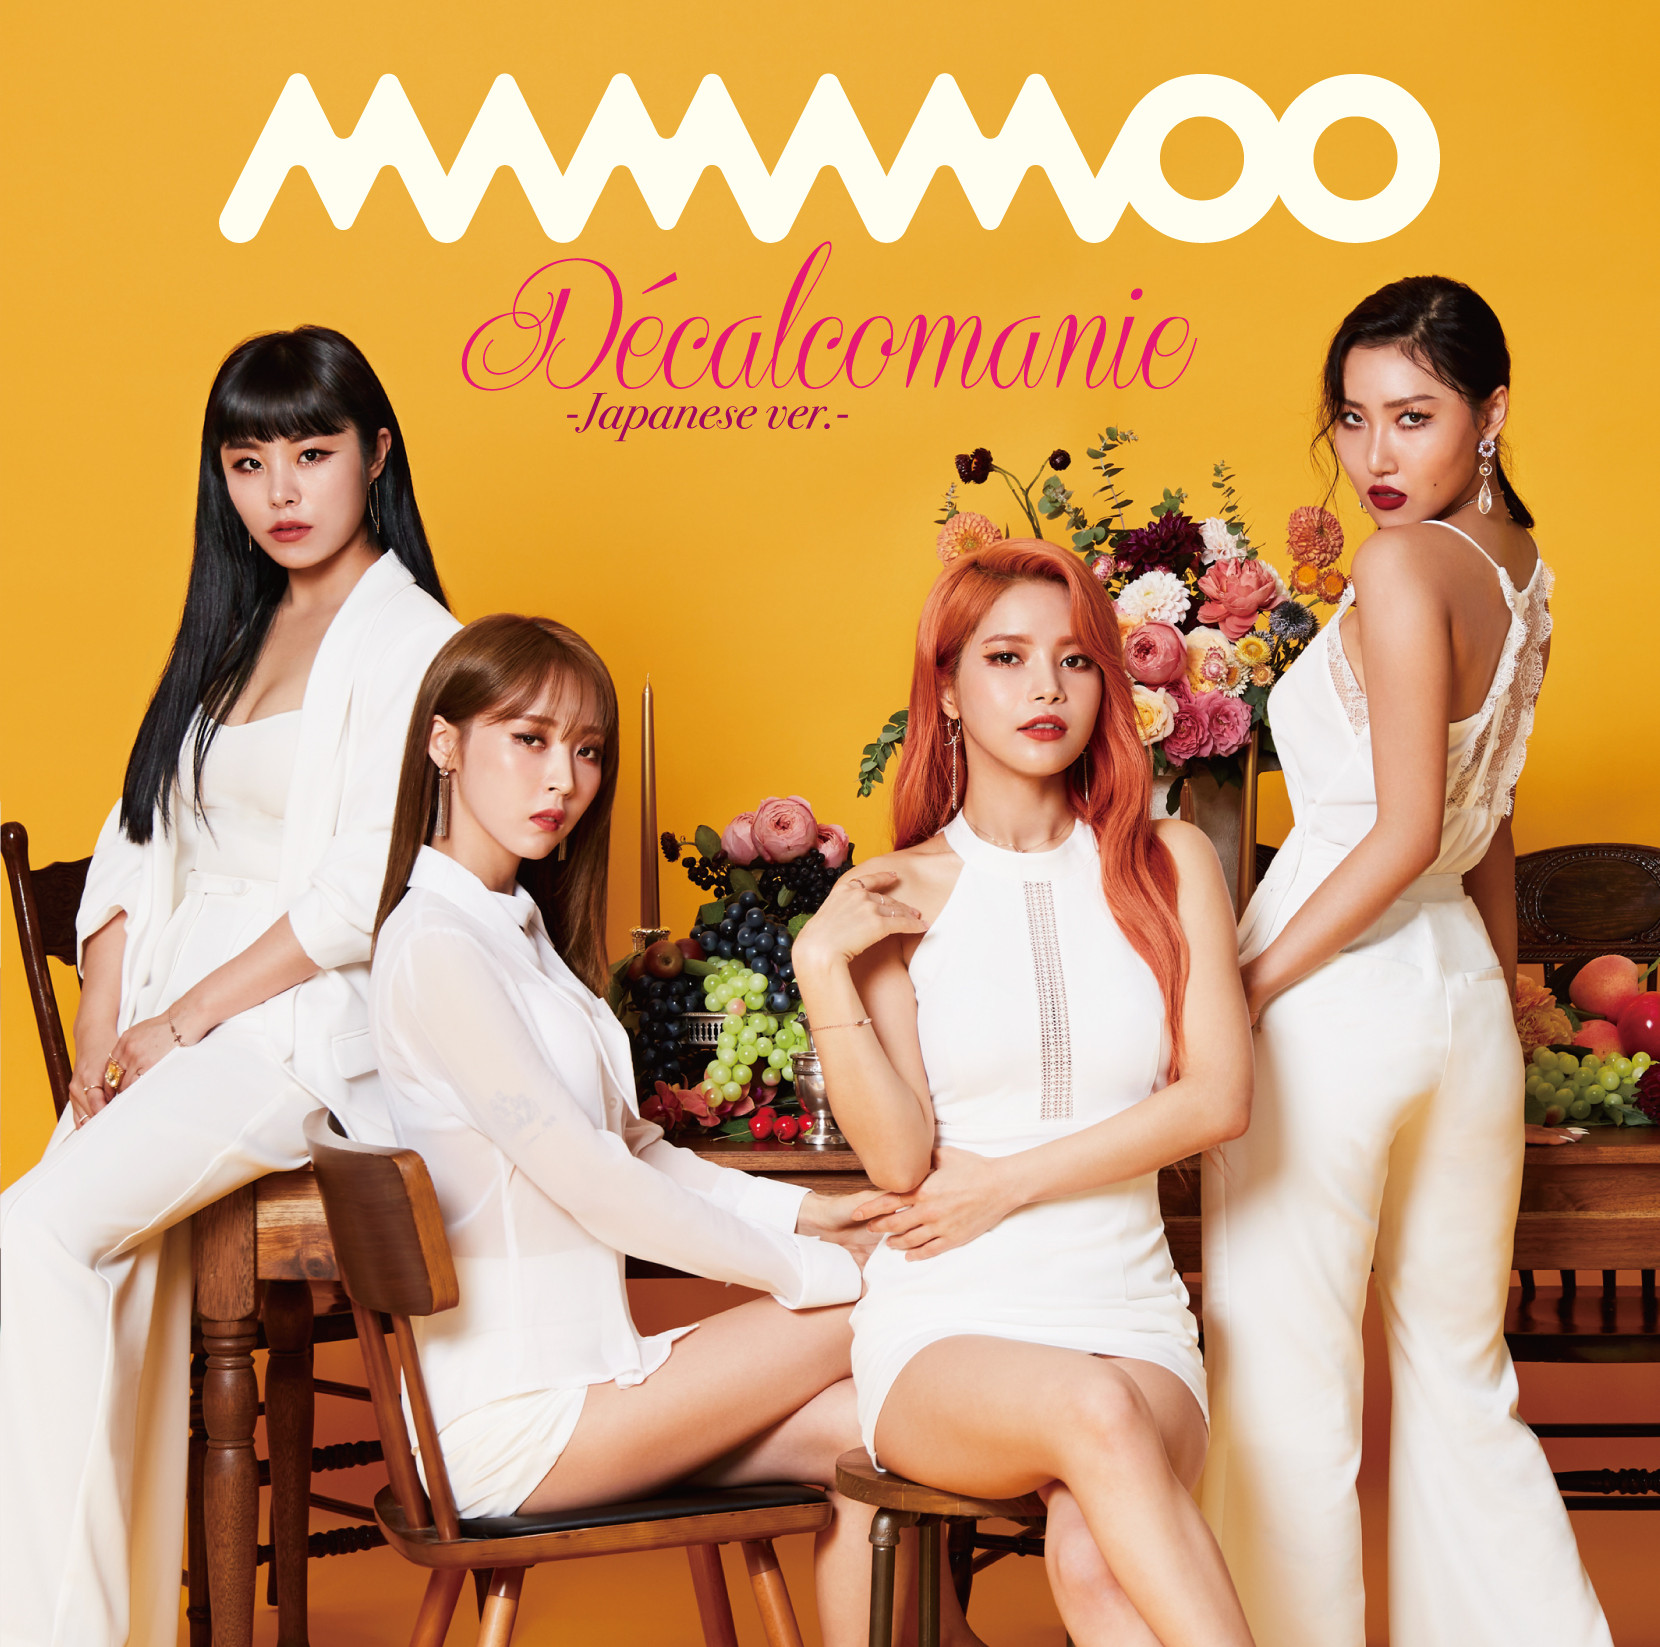 [MAMAMOO] Decalcomanie -Japanese ver.B